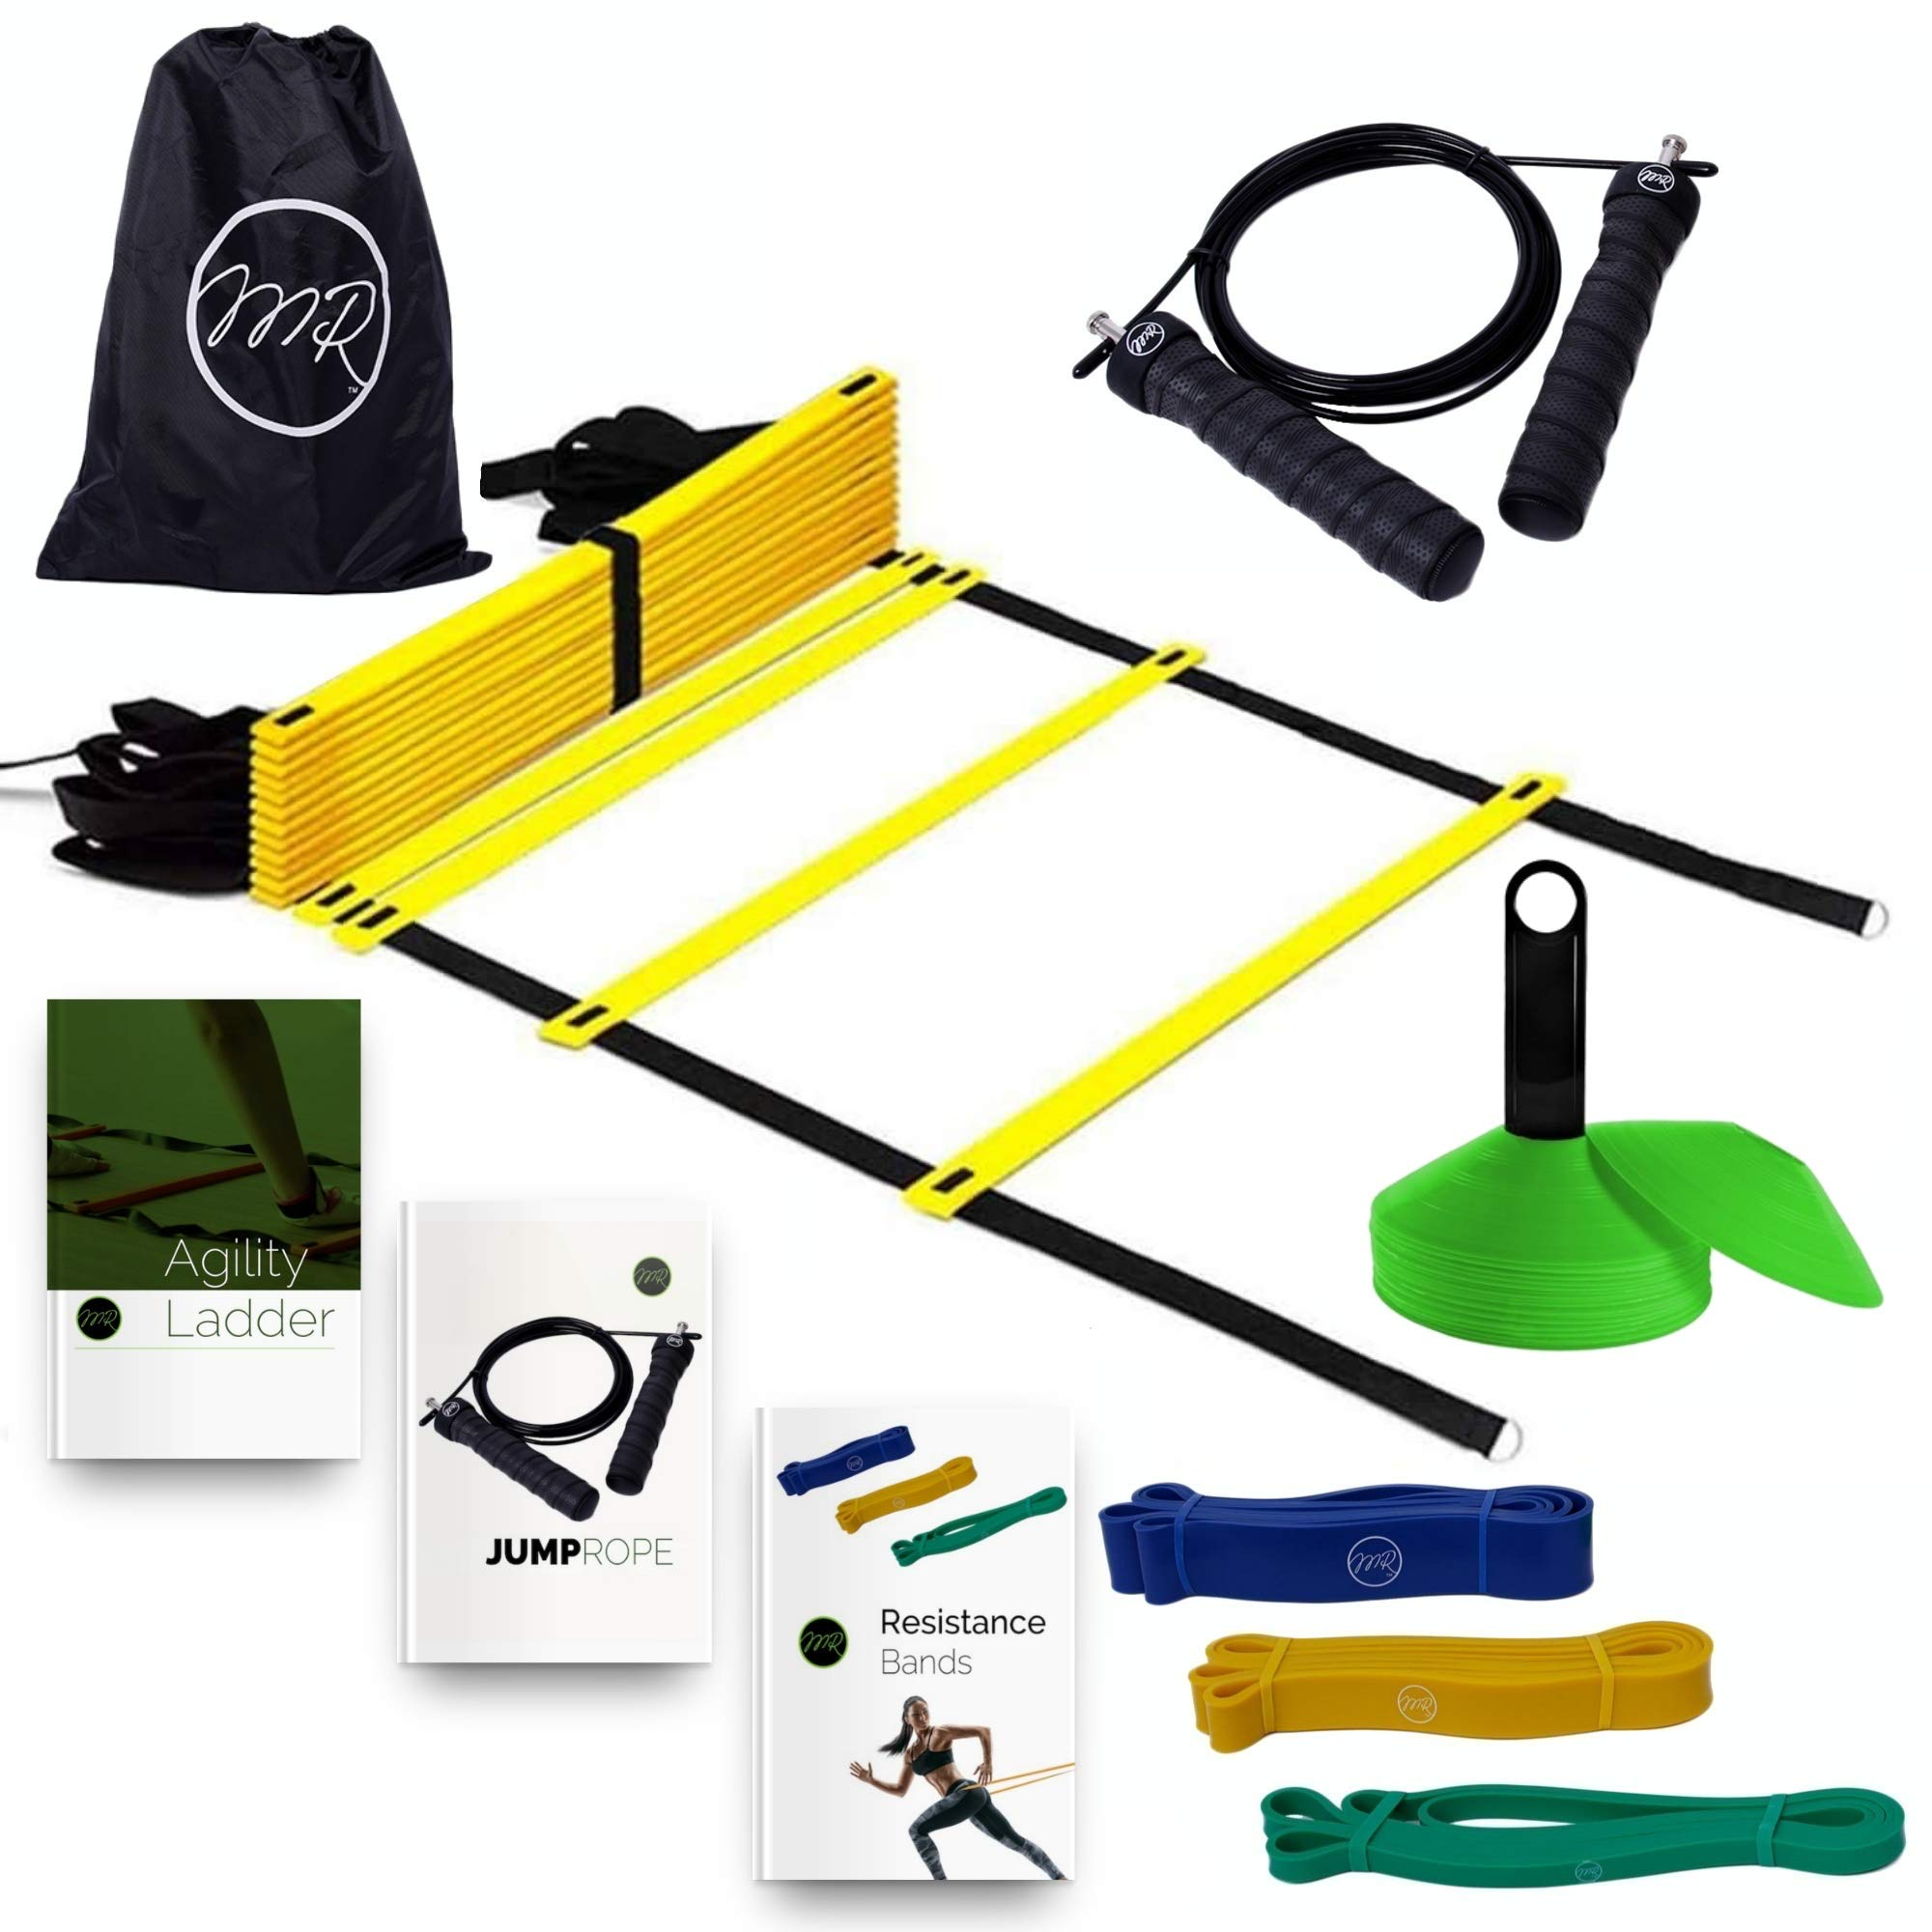 MRProdux Speed and Agility Training Equipment Set with eBook Workout Guides | Ladder, Cones, Resistance Bands, Speed Rope | Footwork, Endurance, Explosiveness Training | Football, Soccer, Basketball